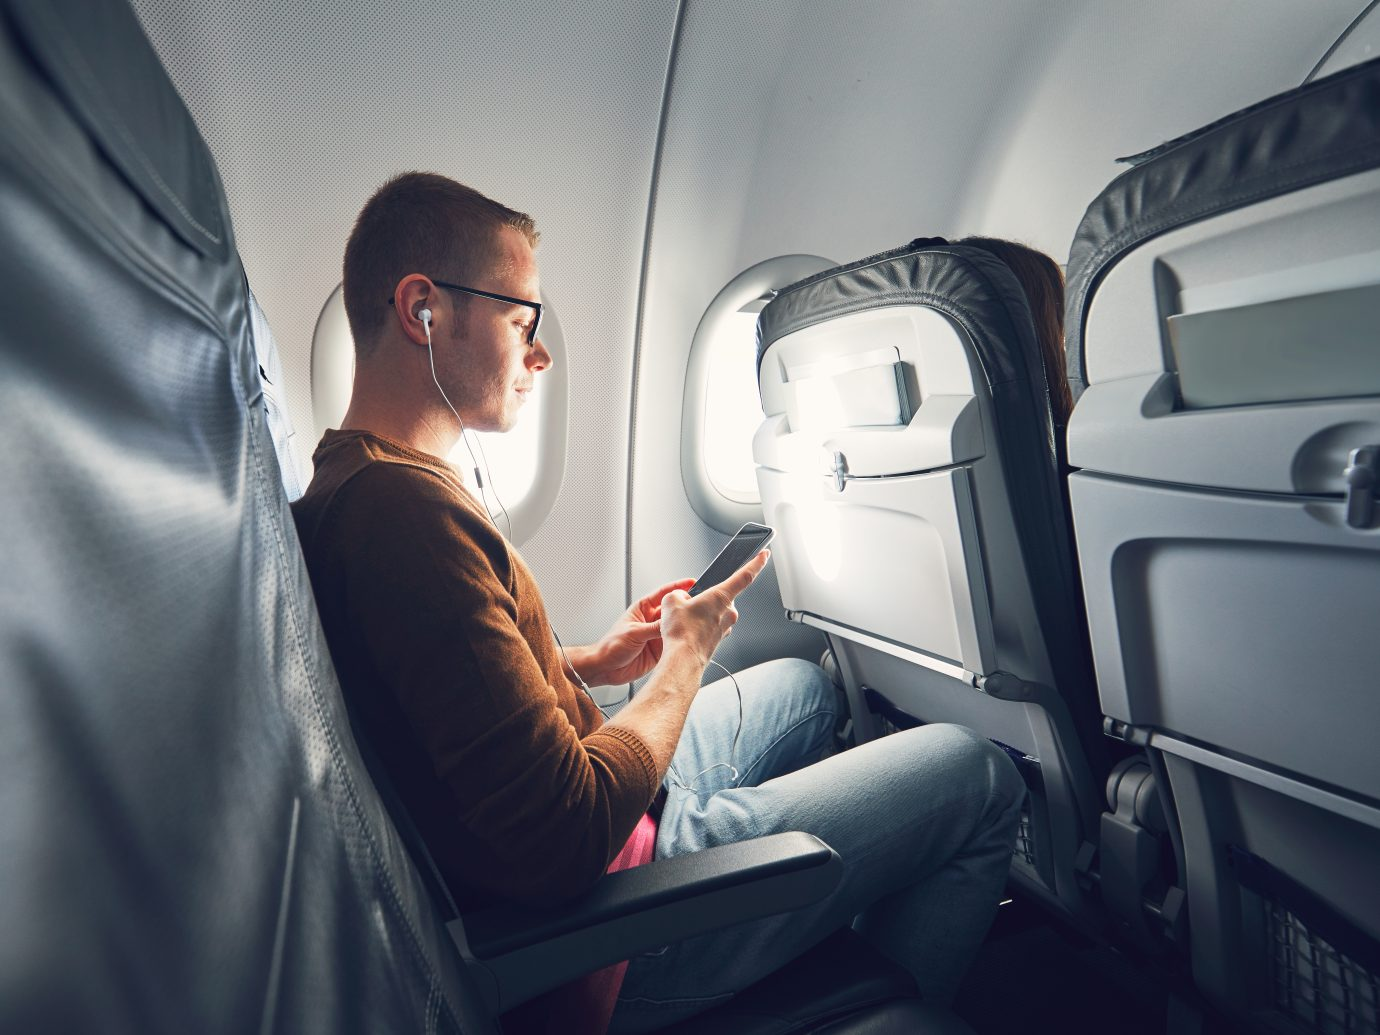 Young man (traveler) using smart phone during flight and listening music.